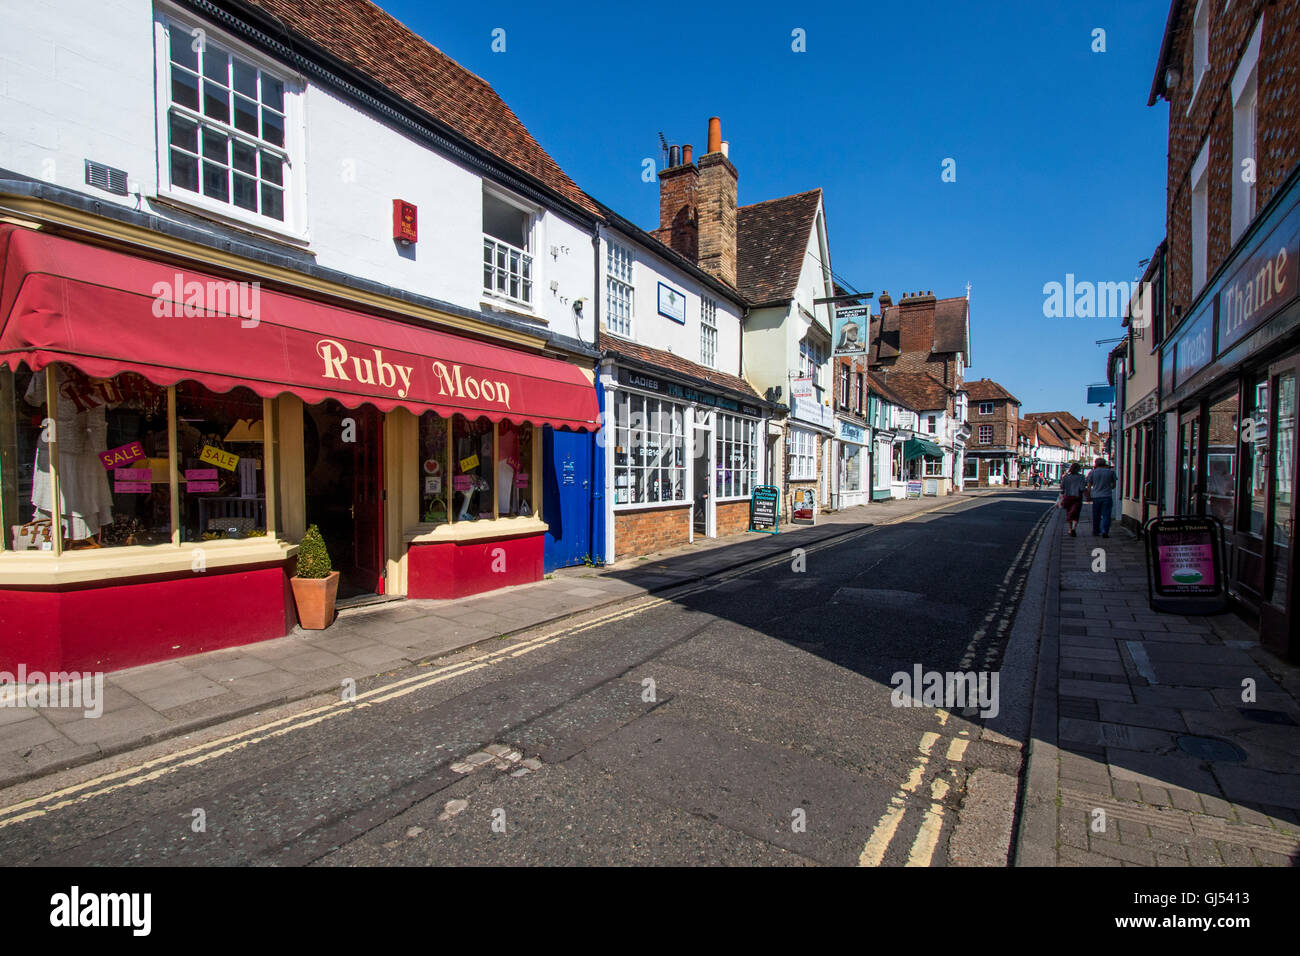 Shops in the town town of Thame Oxfordshire England - Stock Image